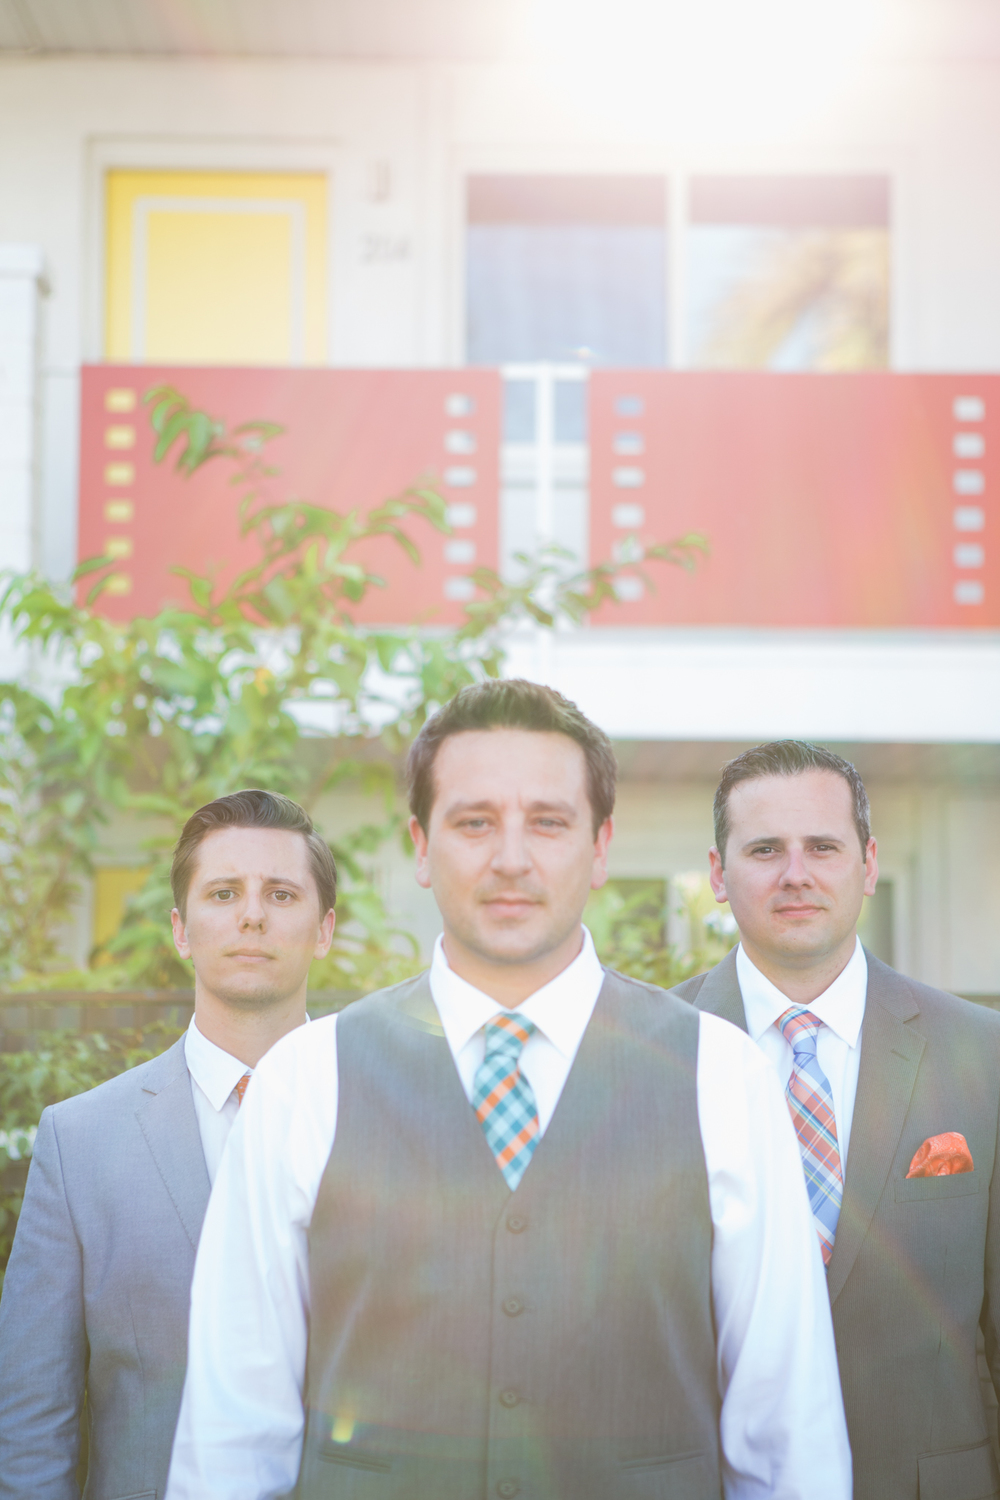 scottsdale-wedding-photographer-el-dorado-groom-brothers-epic-colorful-portrait